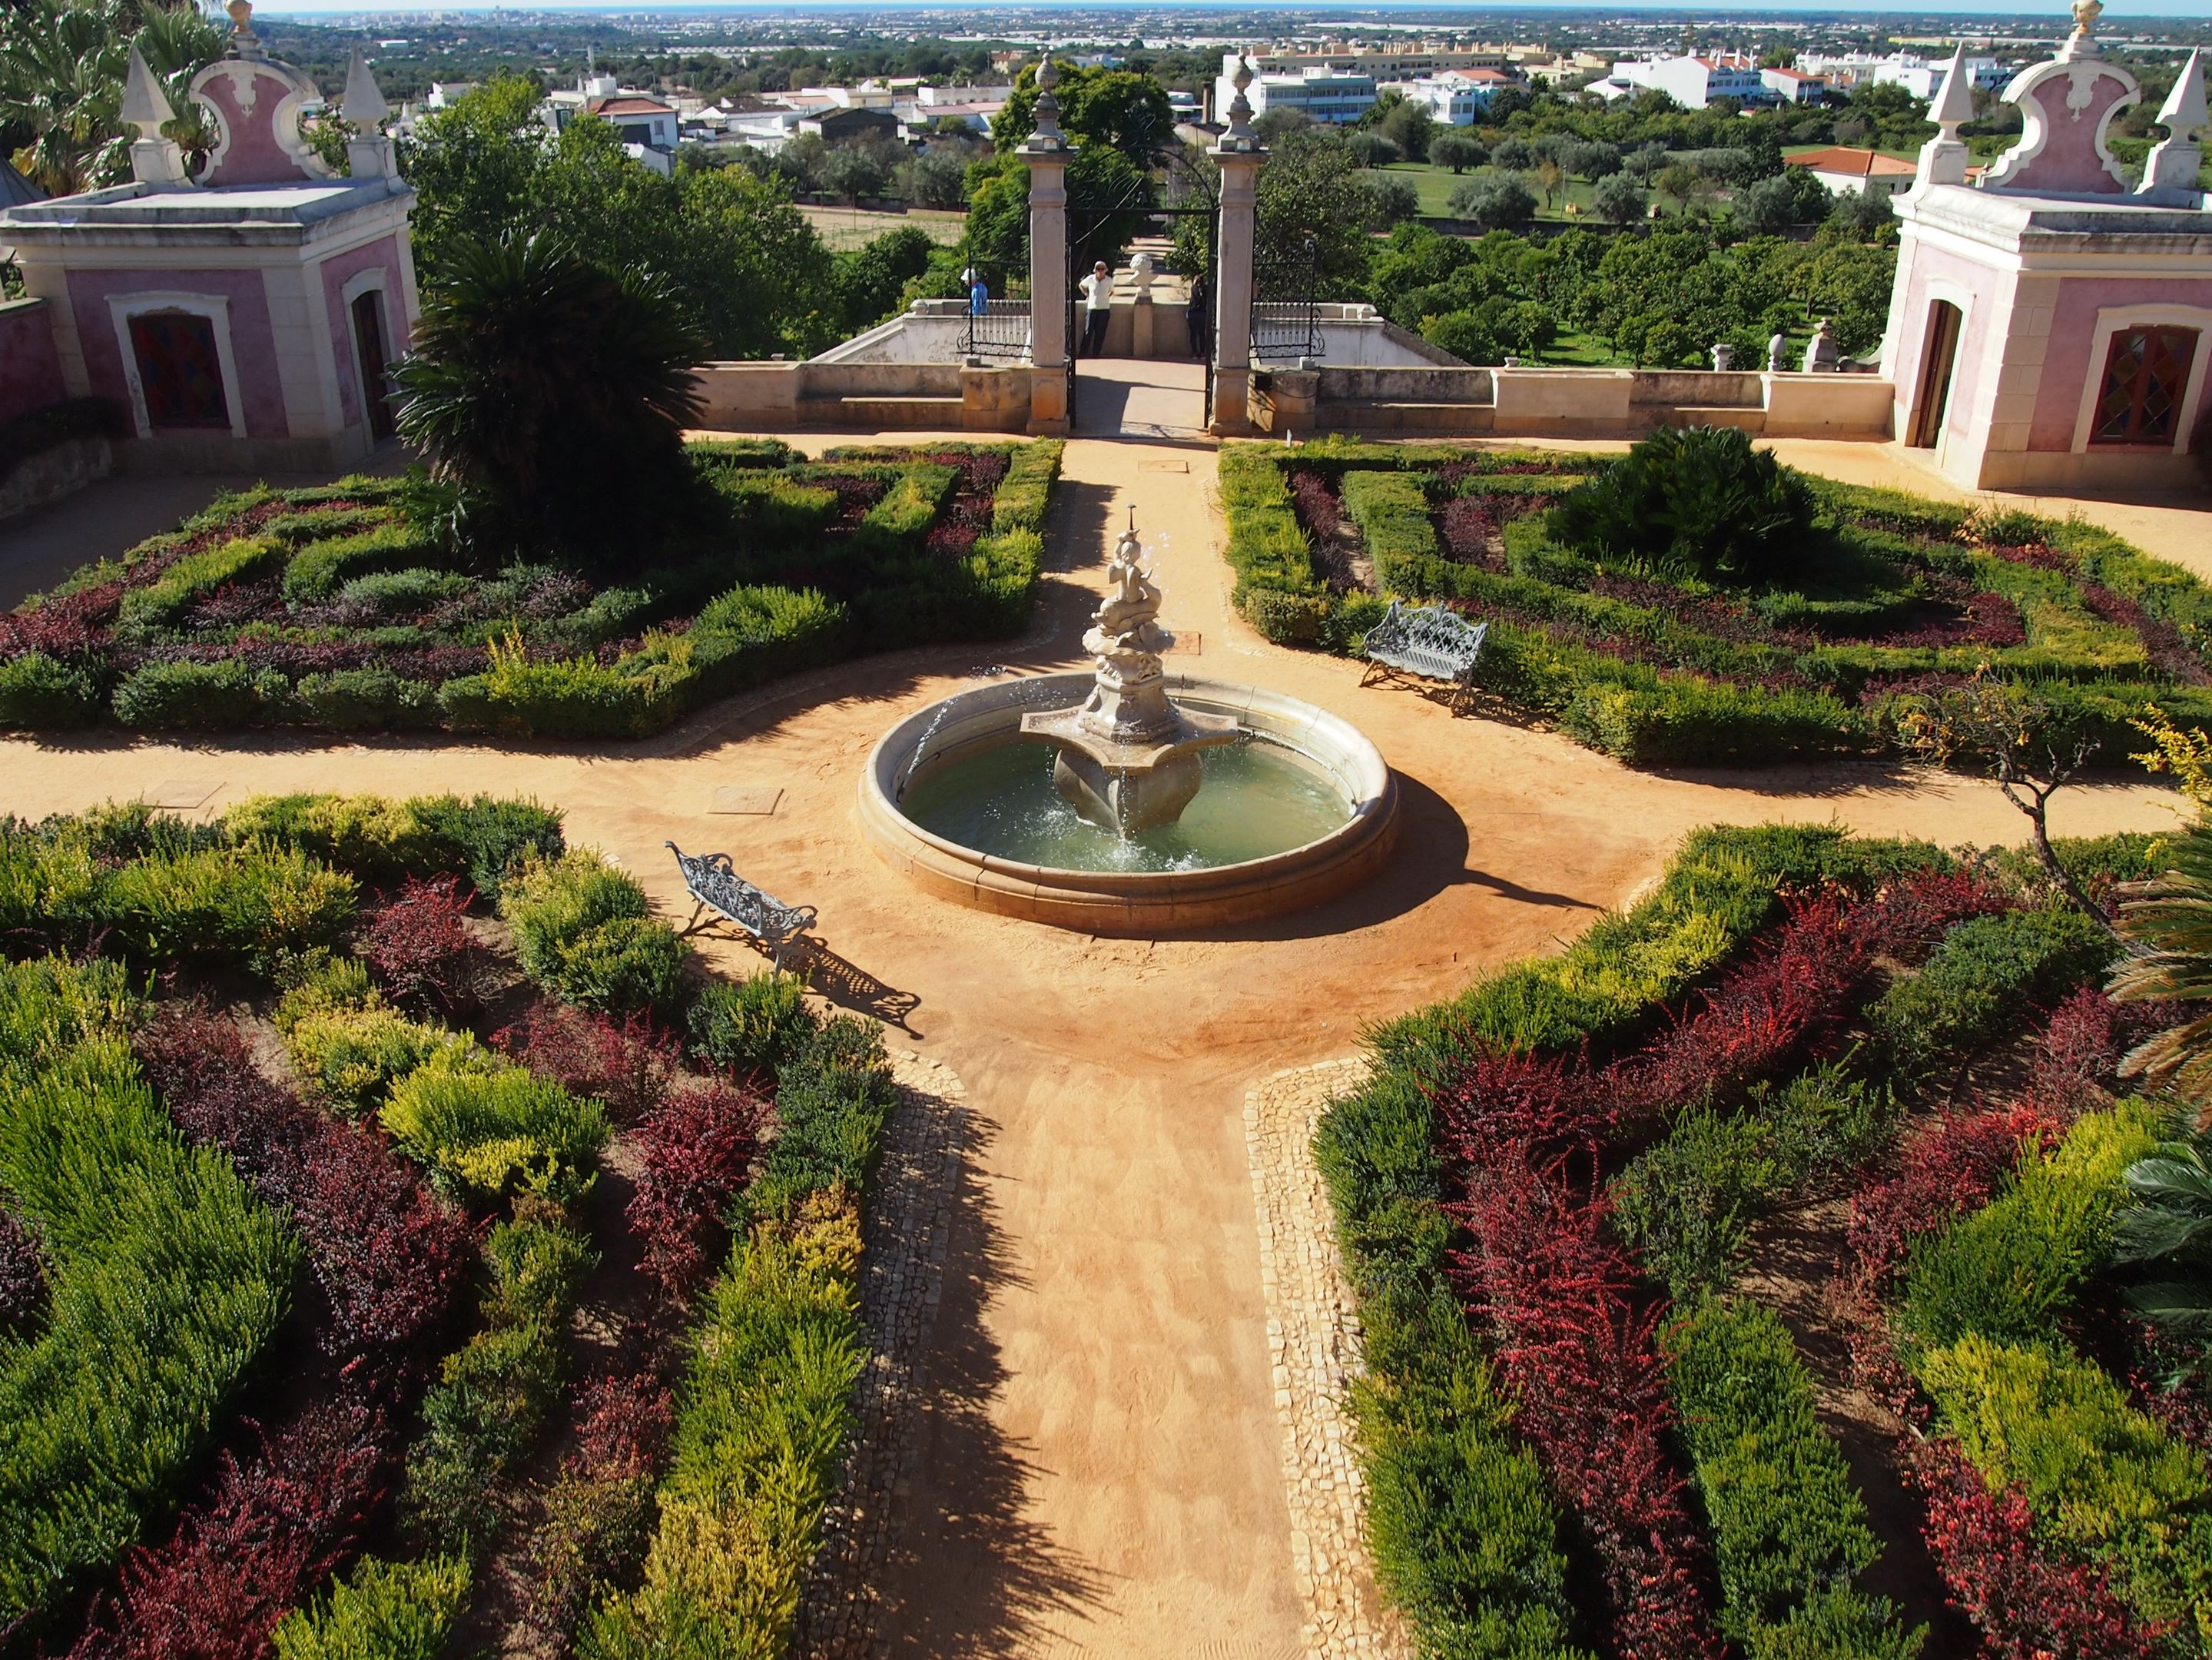 The gardens of Estoi Palace, Algarve, with views down to the ocean.